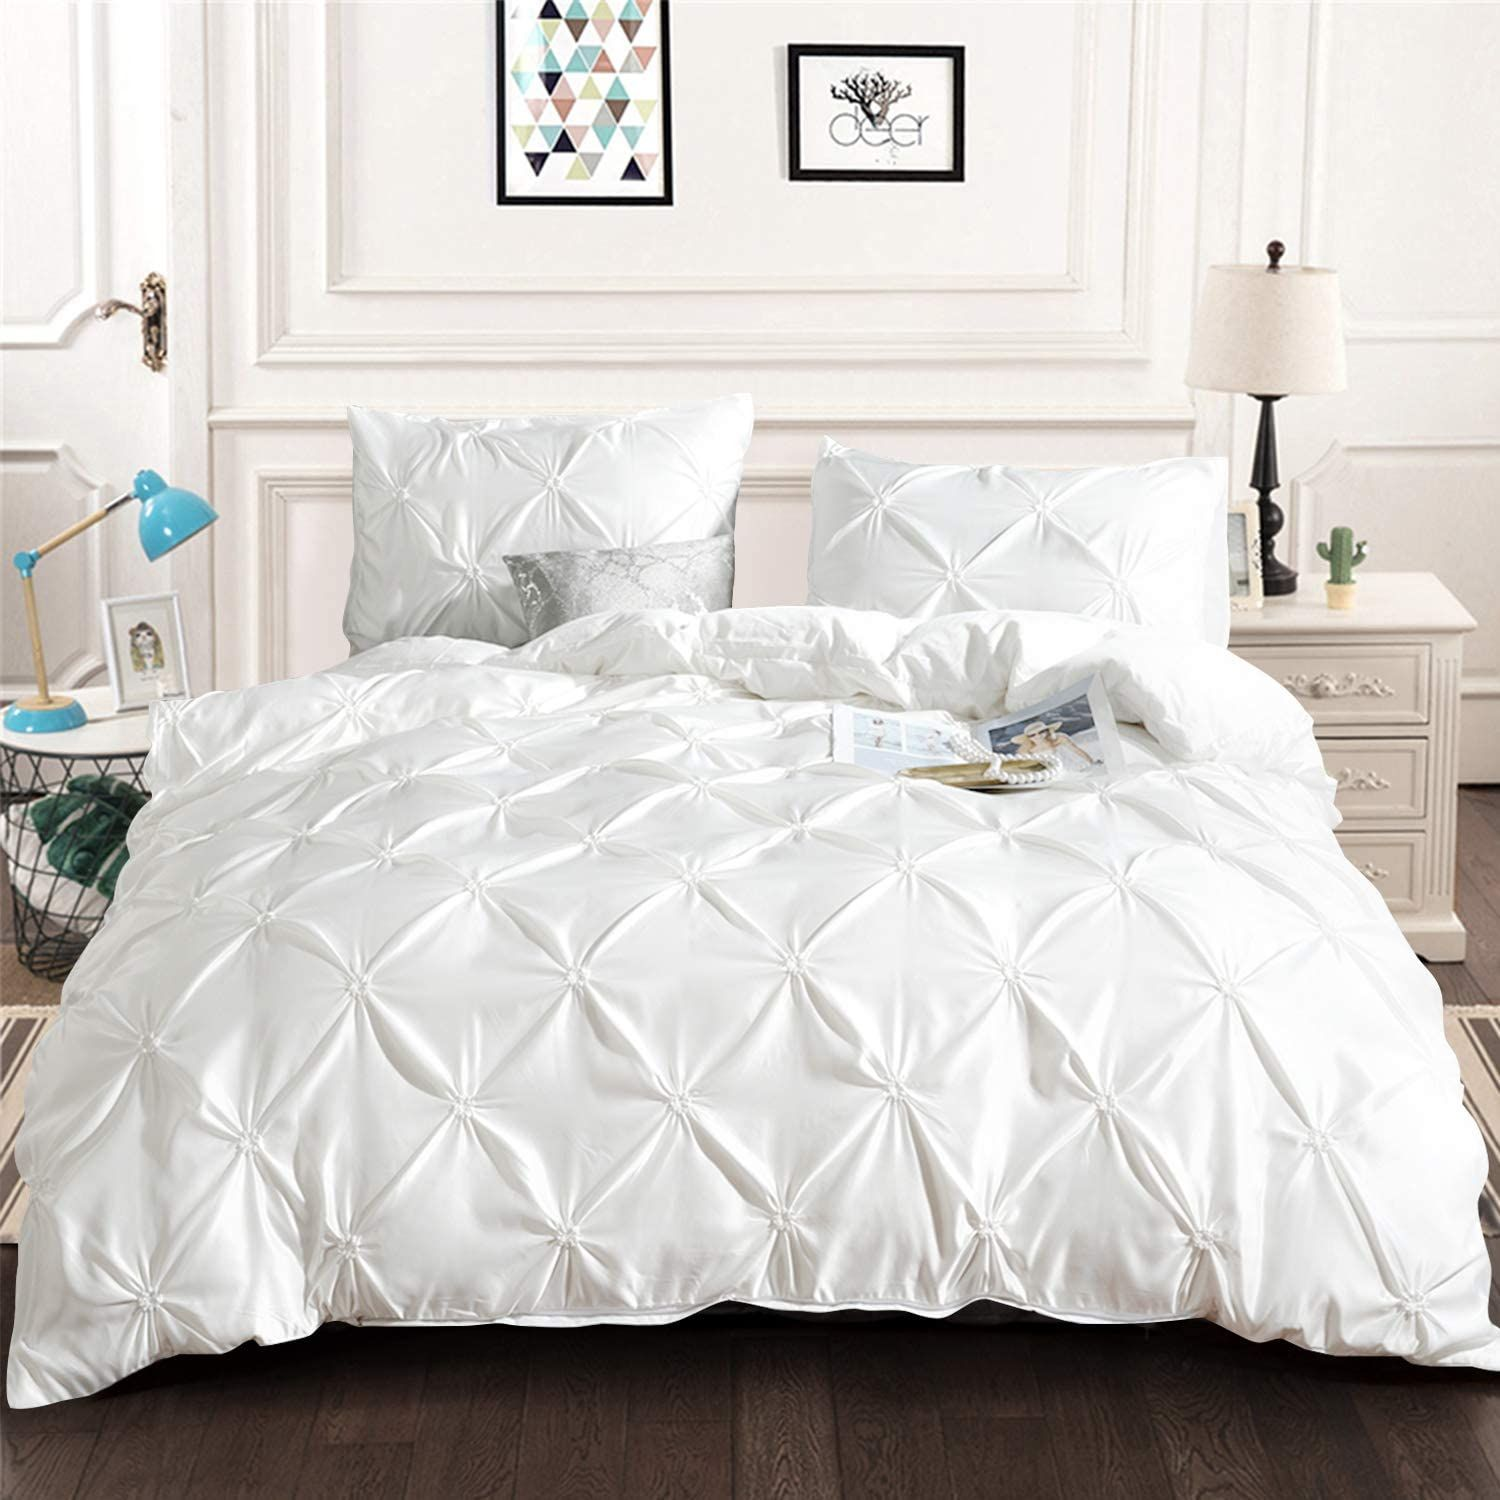 Electronics Cars Fashion Collectibles More Ebay Silver Bedding Comforter Sets White Comforter